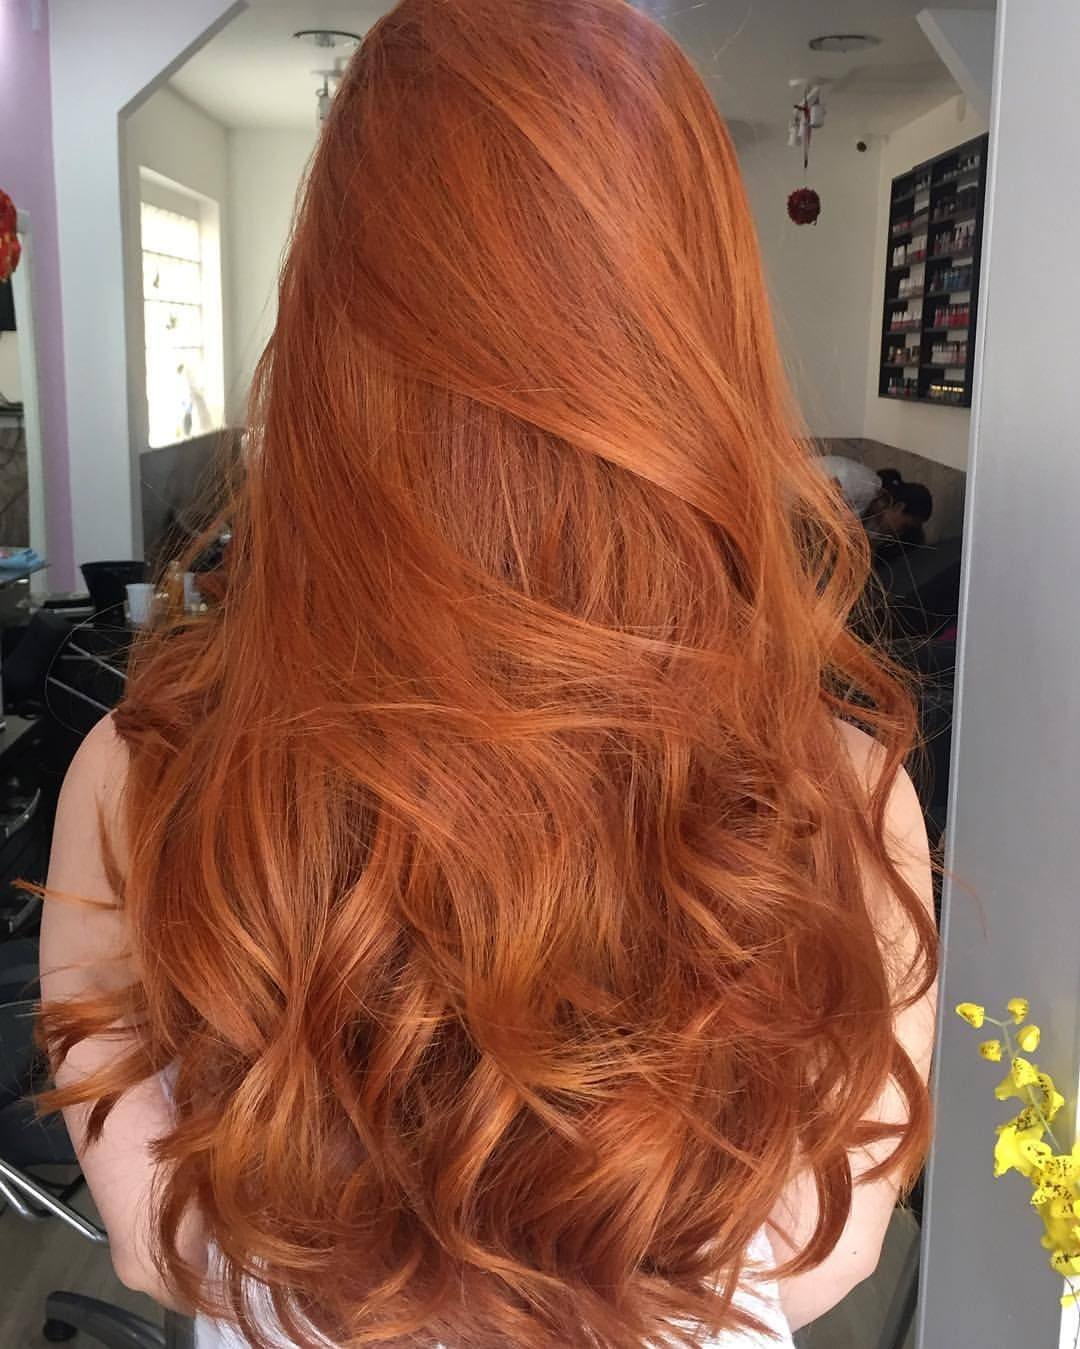 Pin By Morgan Hepper On Life As A Redhead Pinterest Red Hair